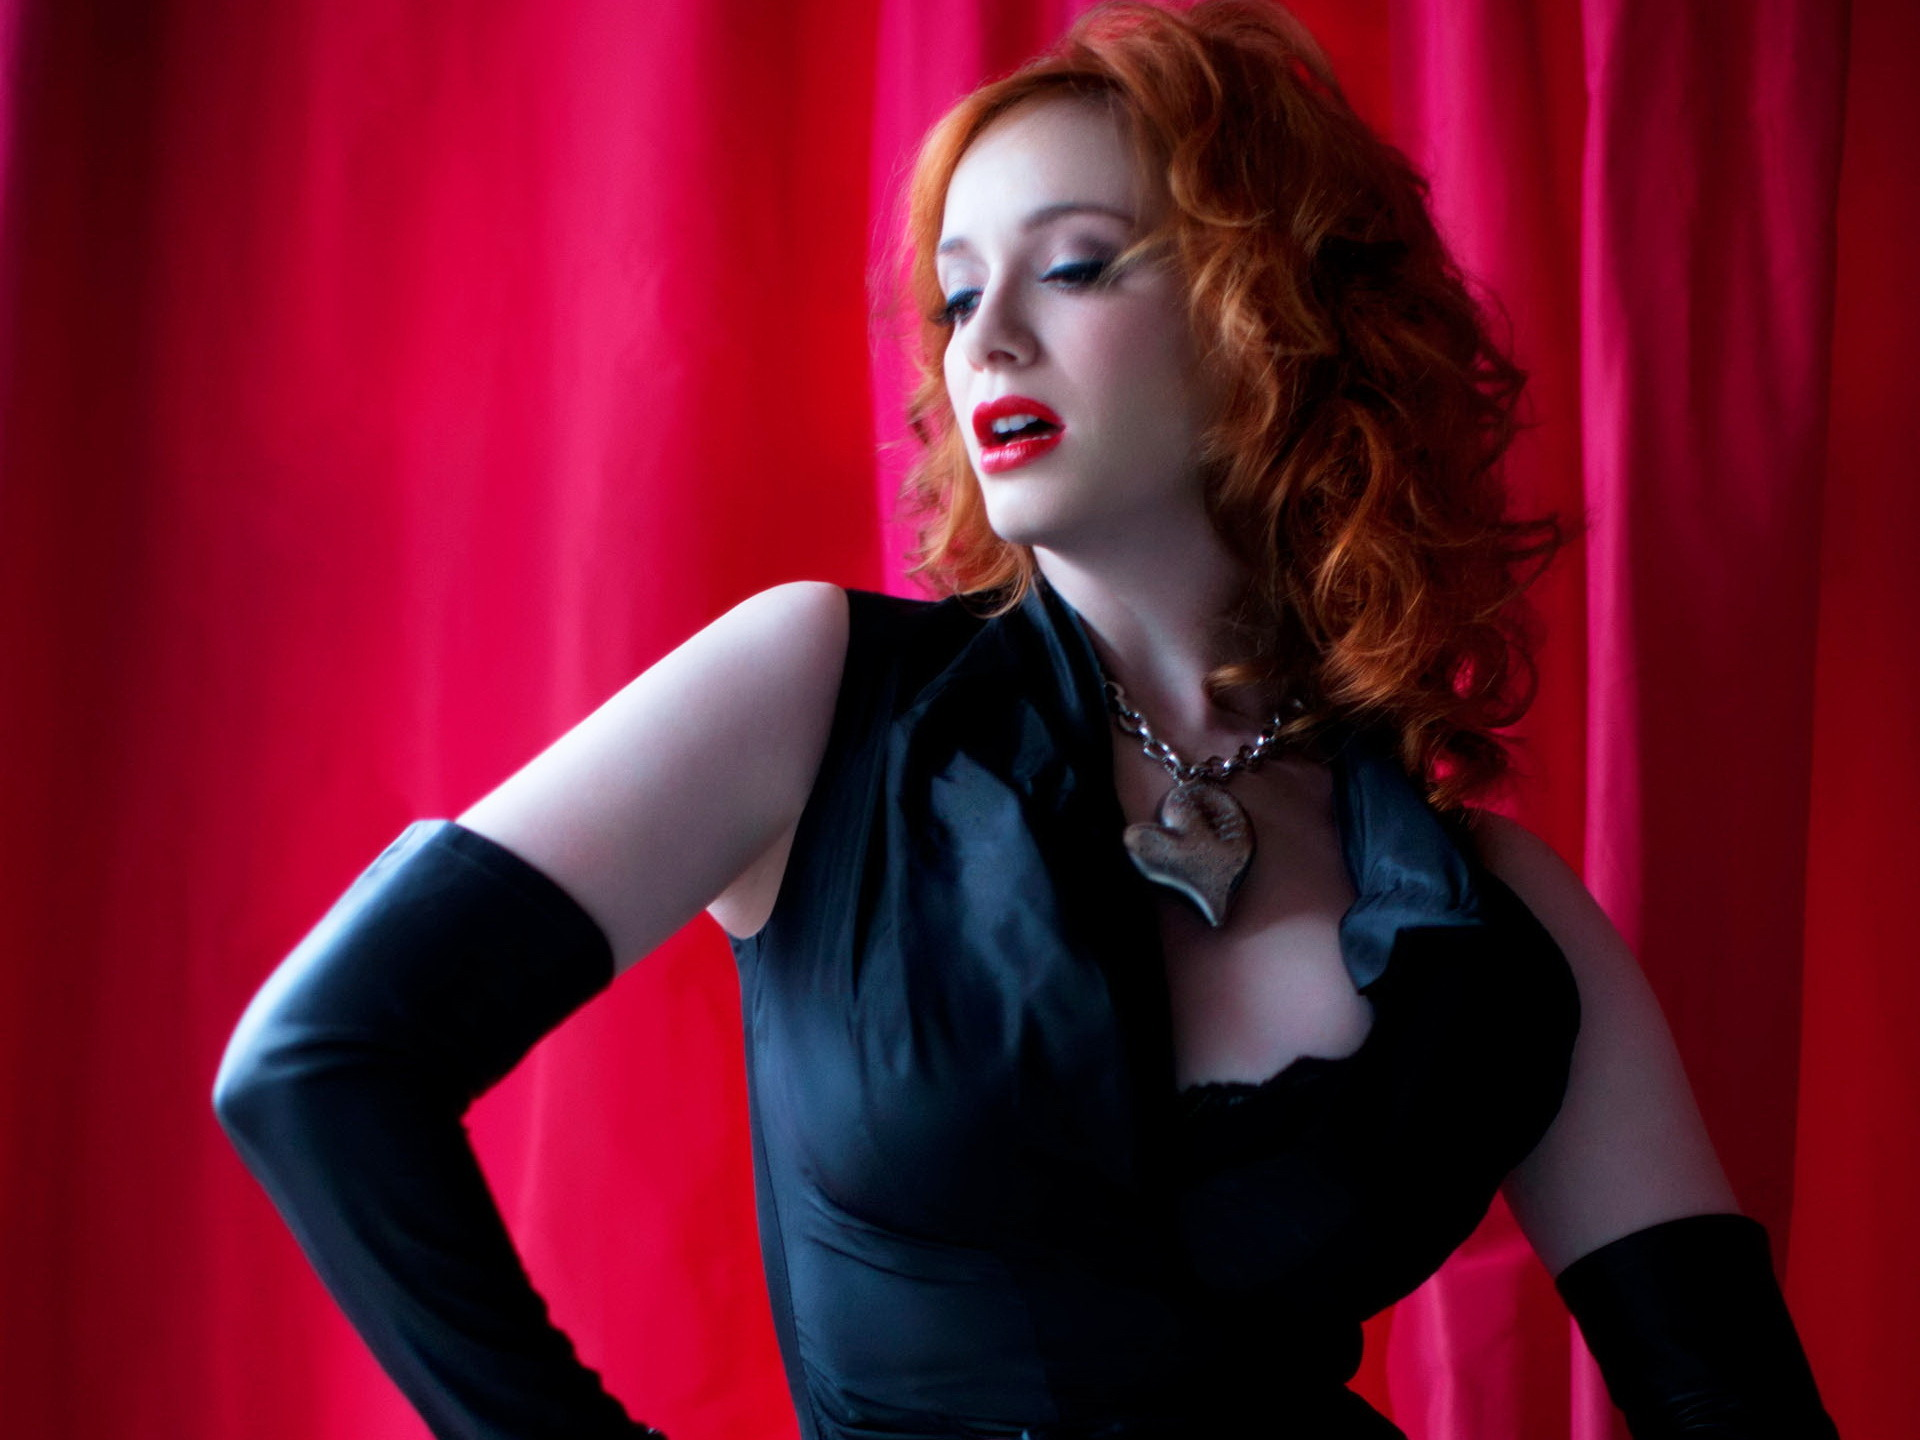 Christina Hendricks Best HD Wallpapers Celebrities Hot Wallpapers 1920x1440